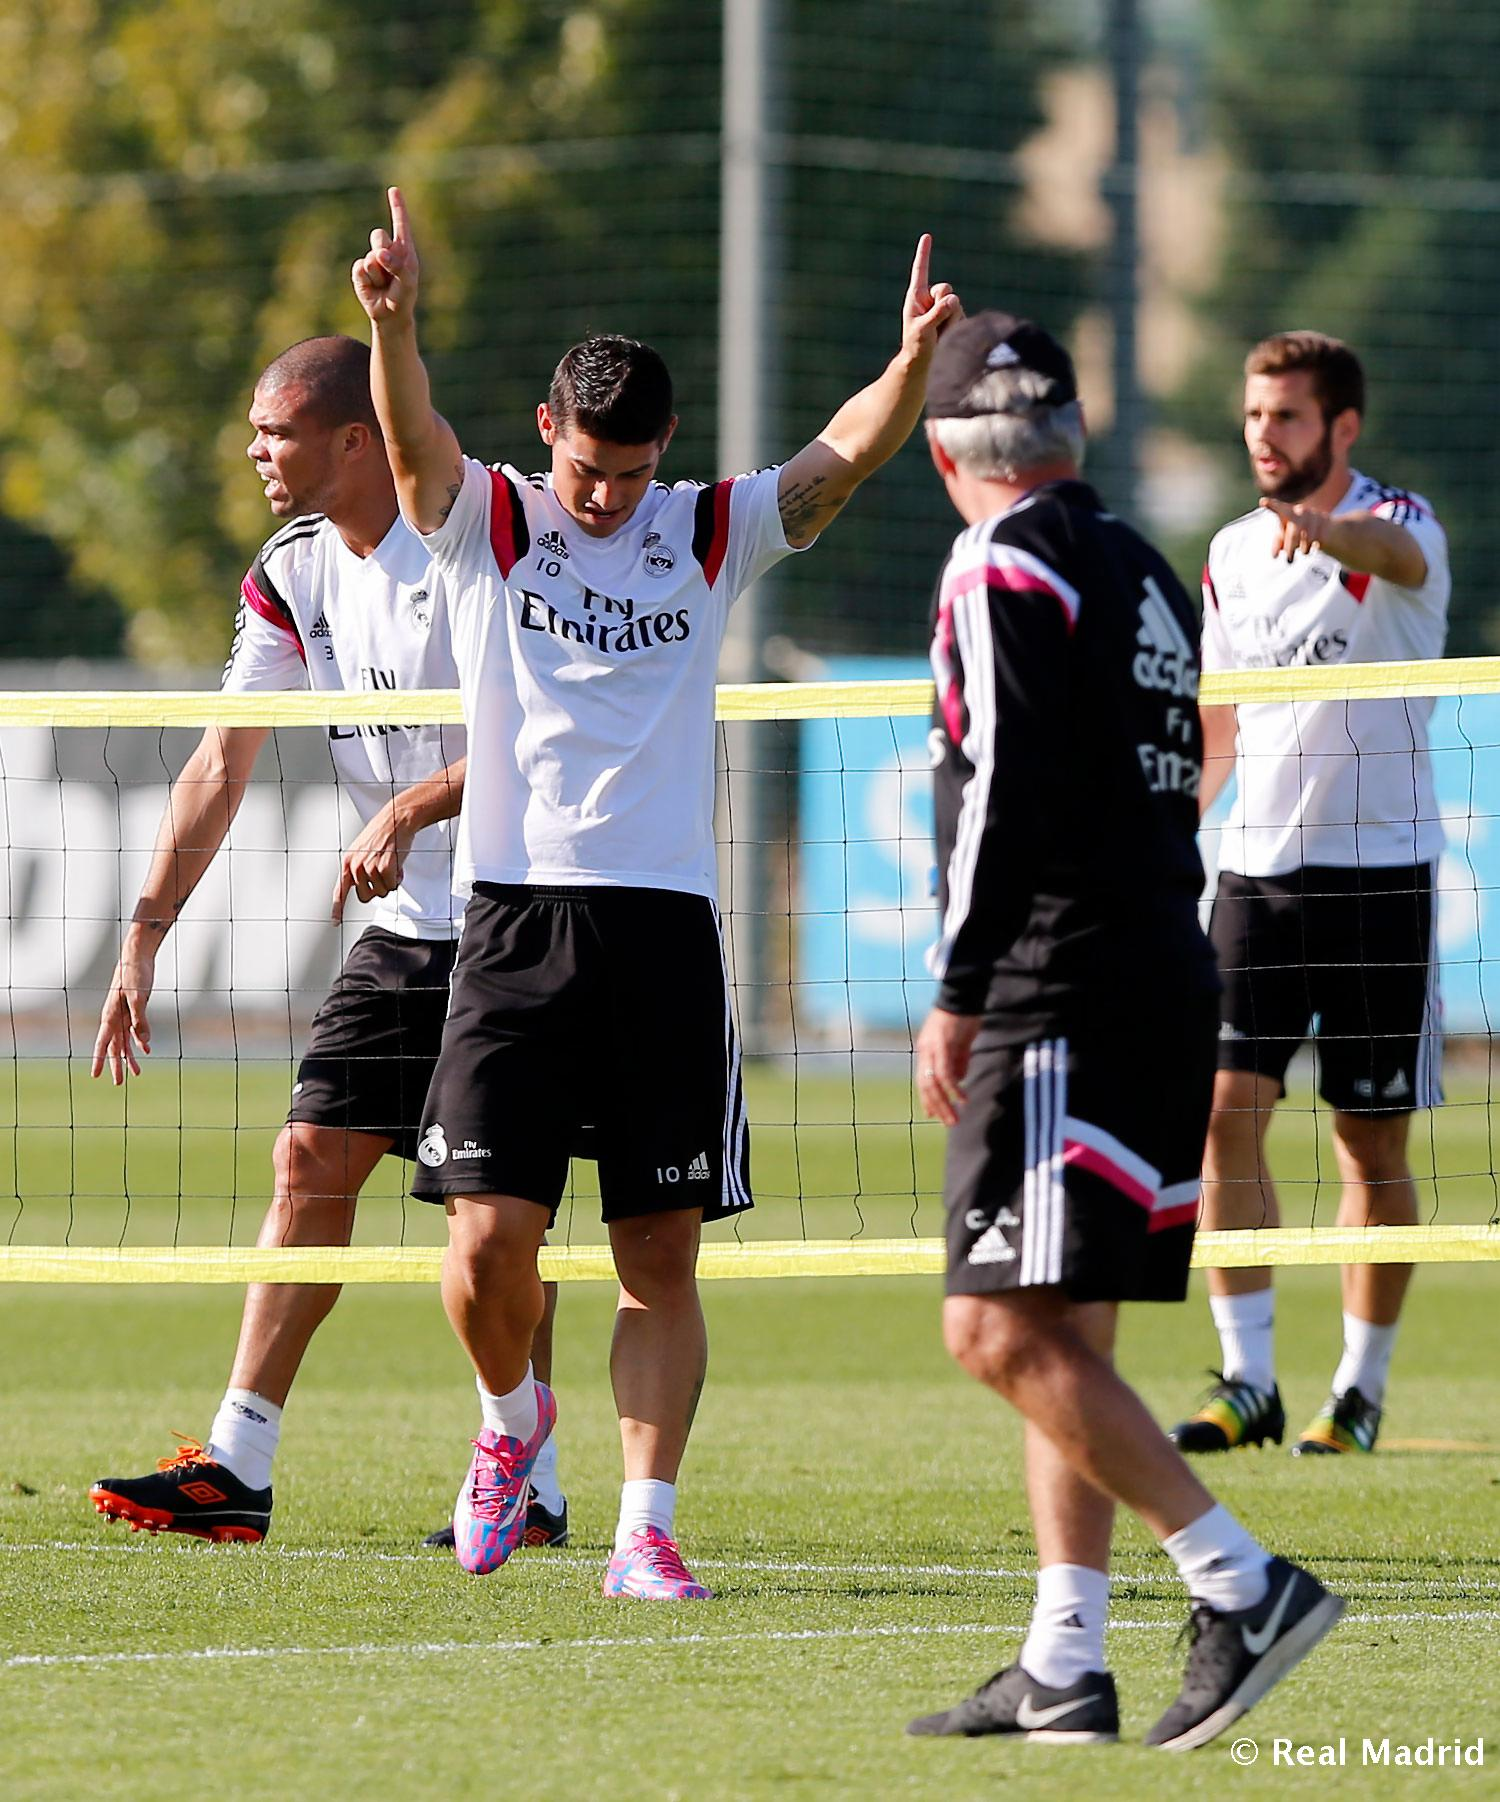 Real Madrid - Entrenamiento del Real Madrid - 02-10-2014